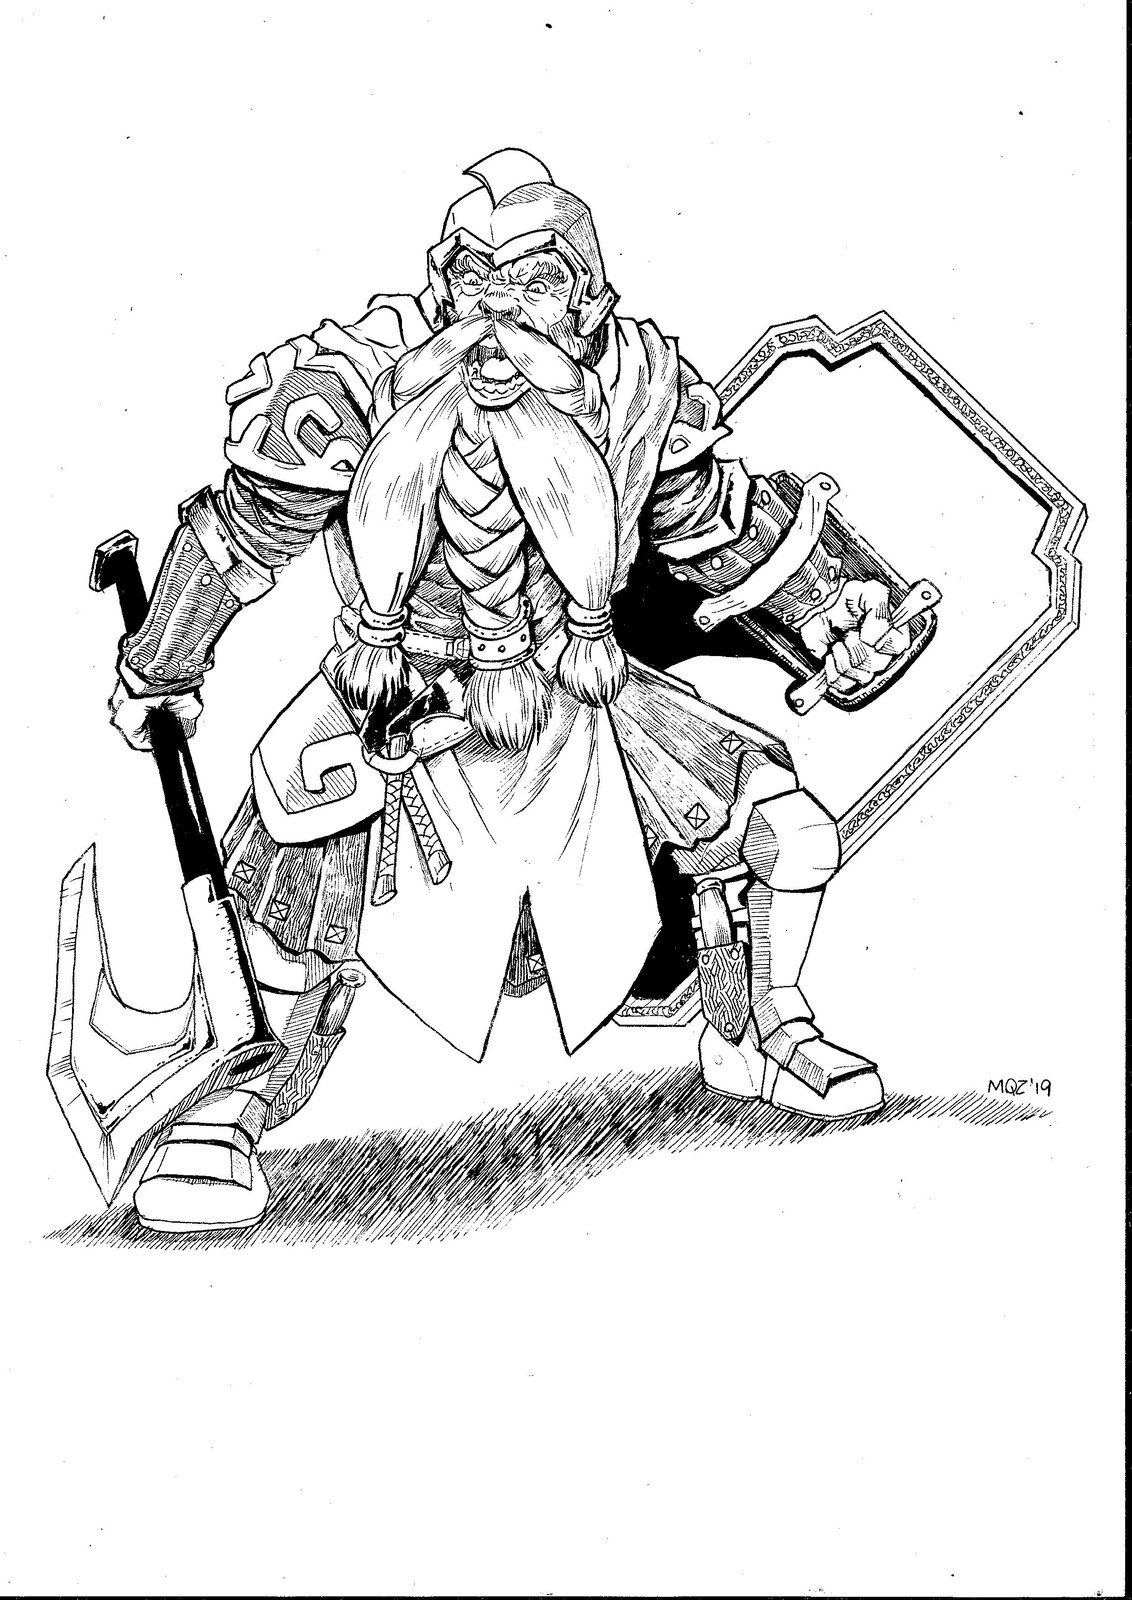 Qhorin, the dwarf lord